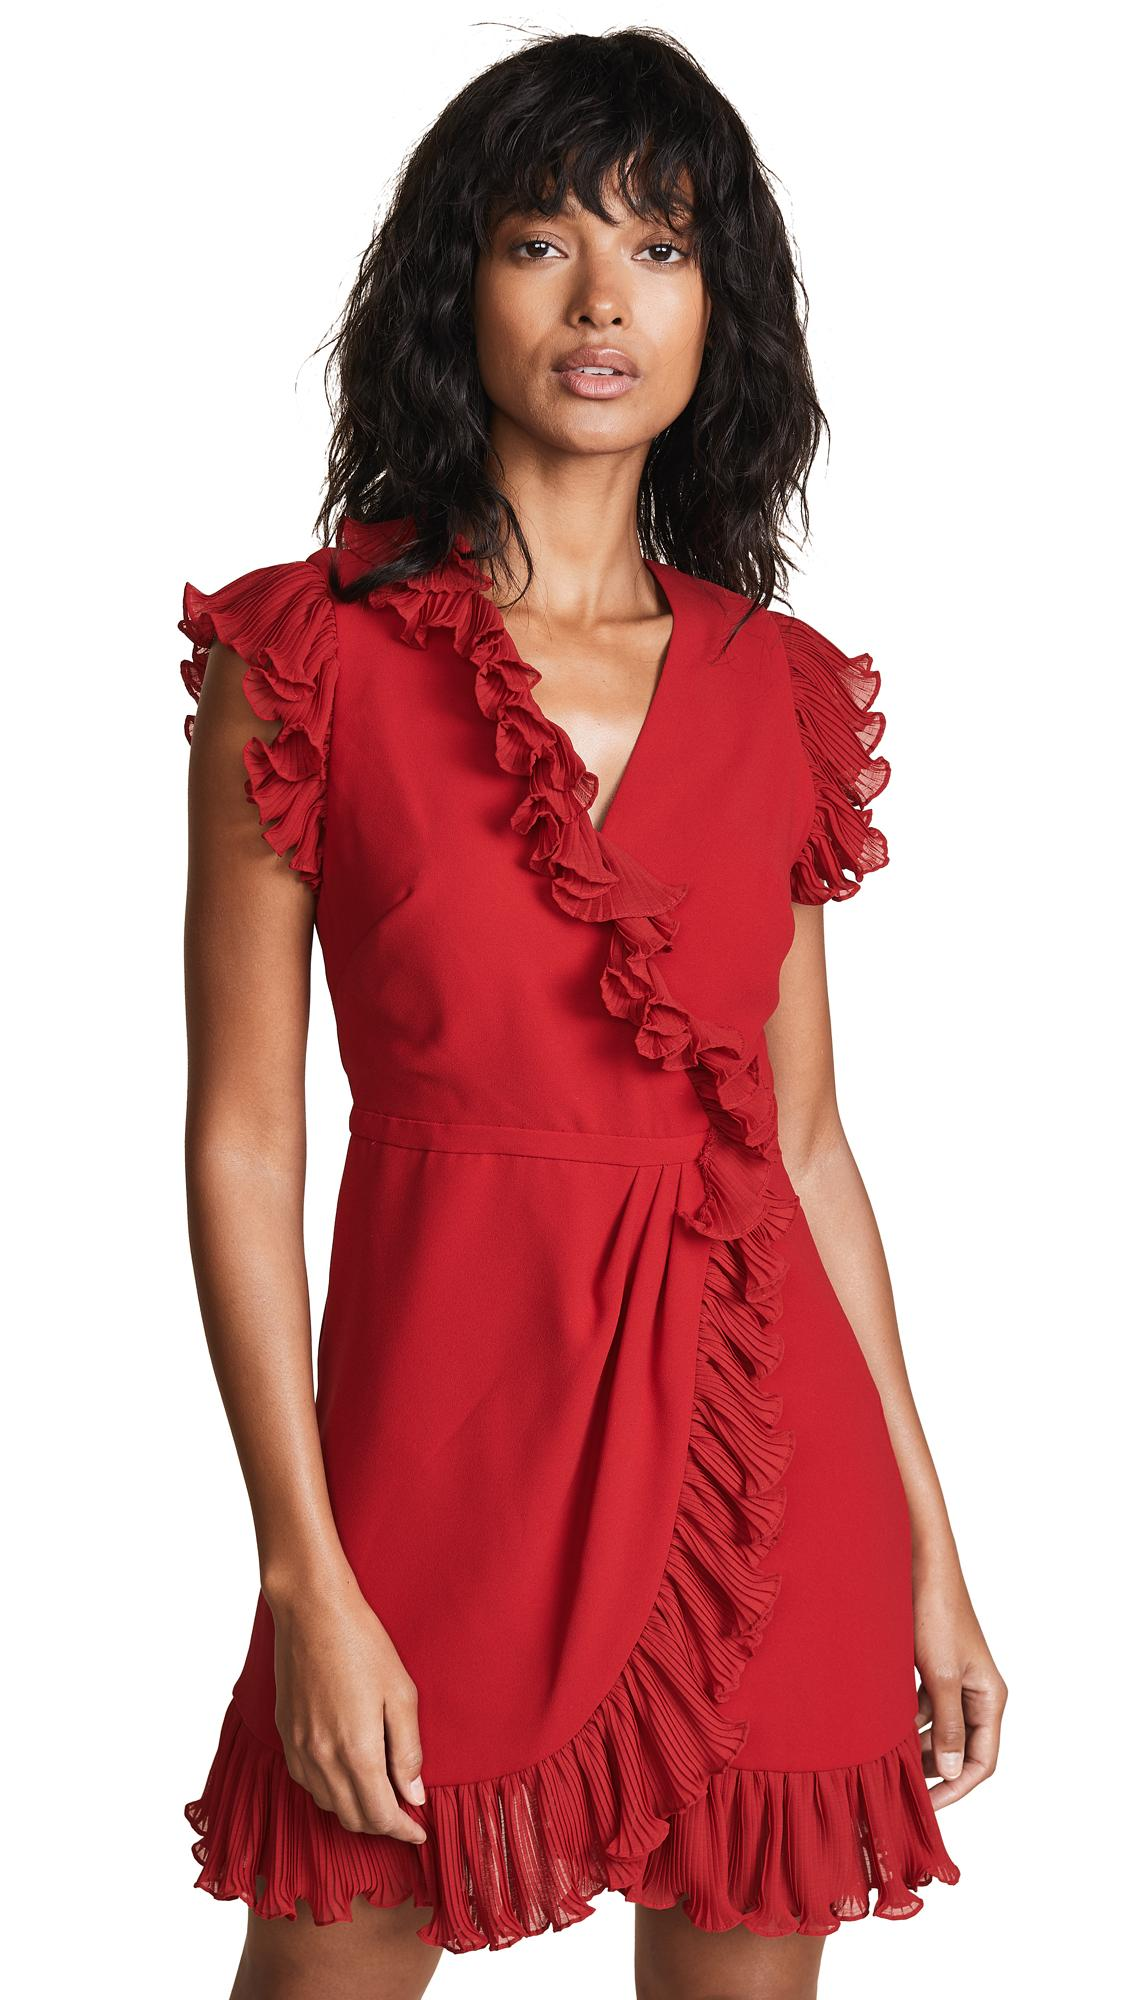 25599a8452c Jill Jill Stuart Ruffle Trim Dress In Poppy Red